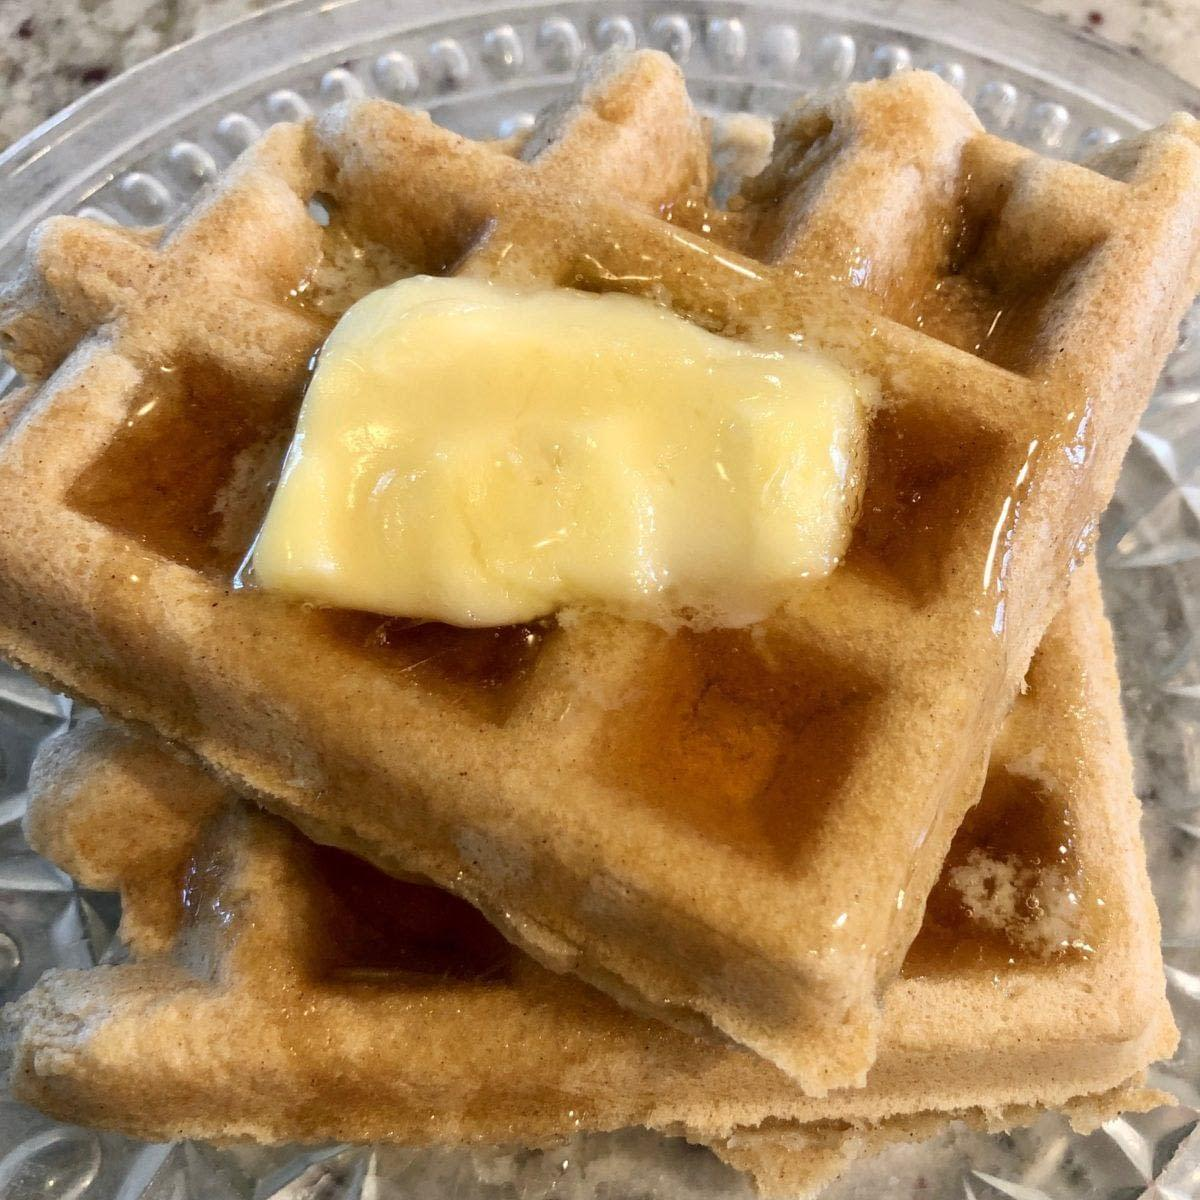 Our Go-to Waffle Recipe